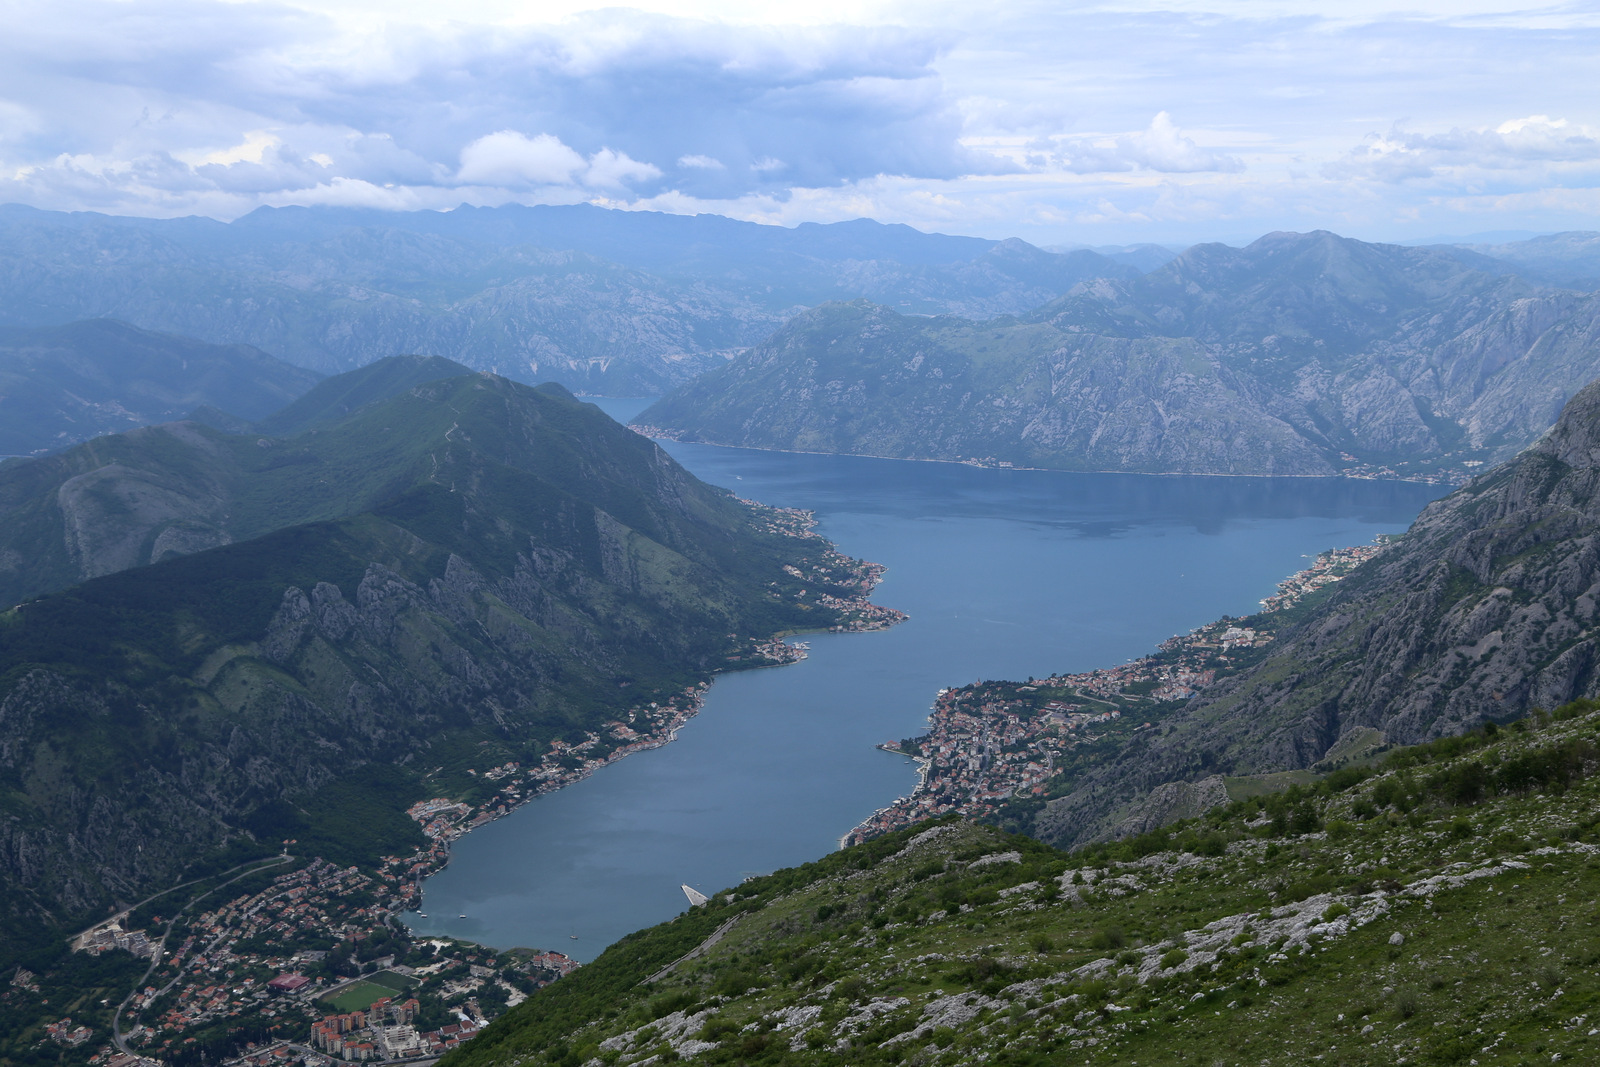 Views from Lovcen-Kotor road